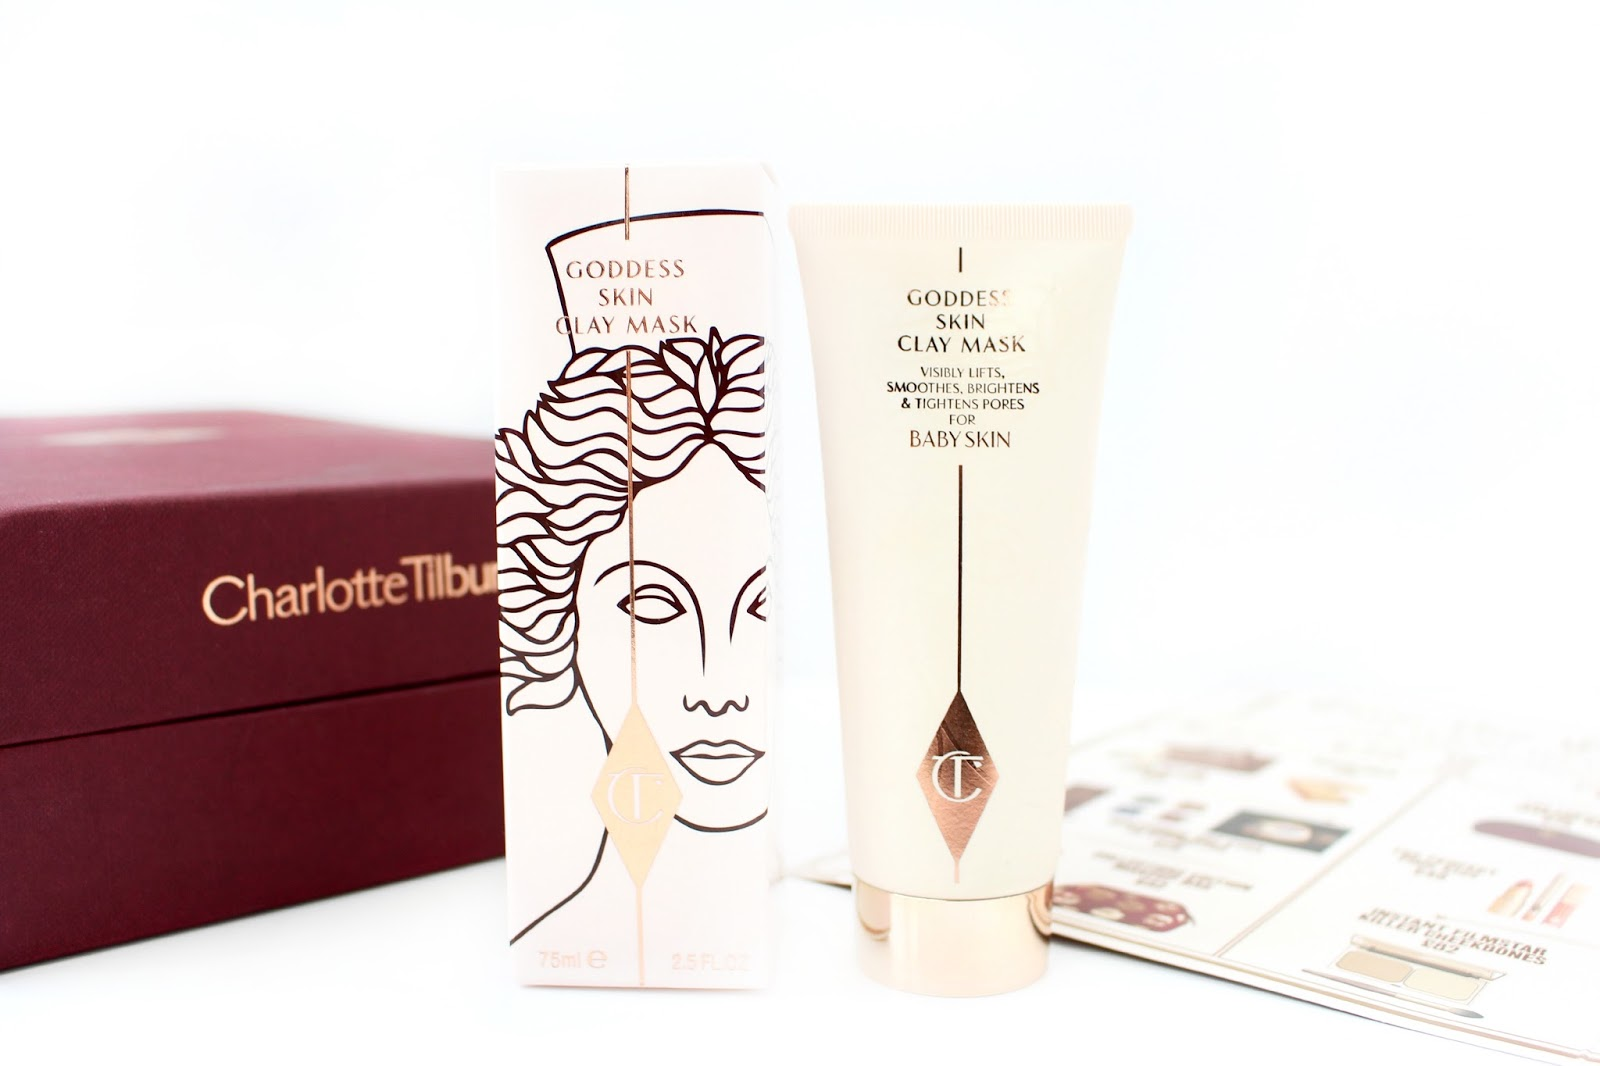 Charlotte Tilbury Goddess Skin Clay Mask Review